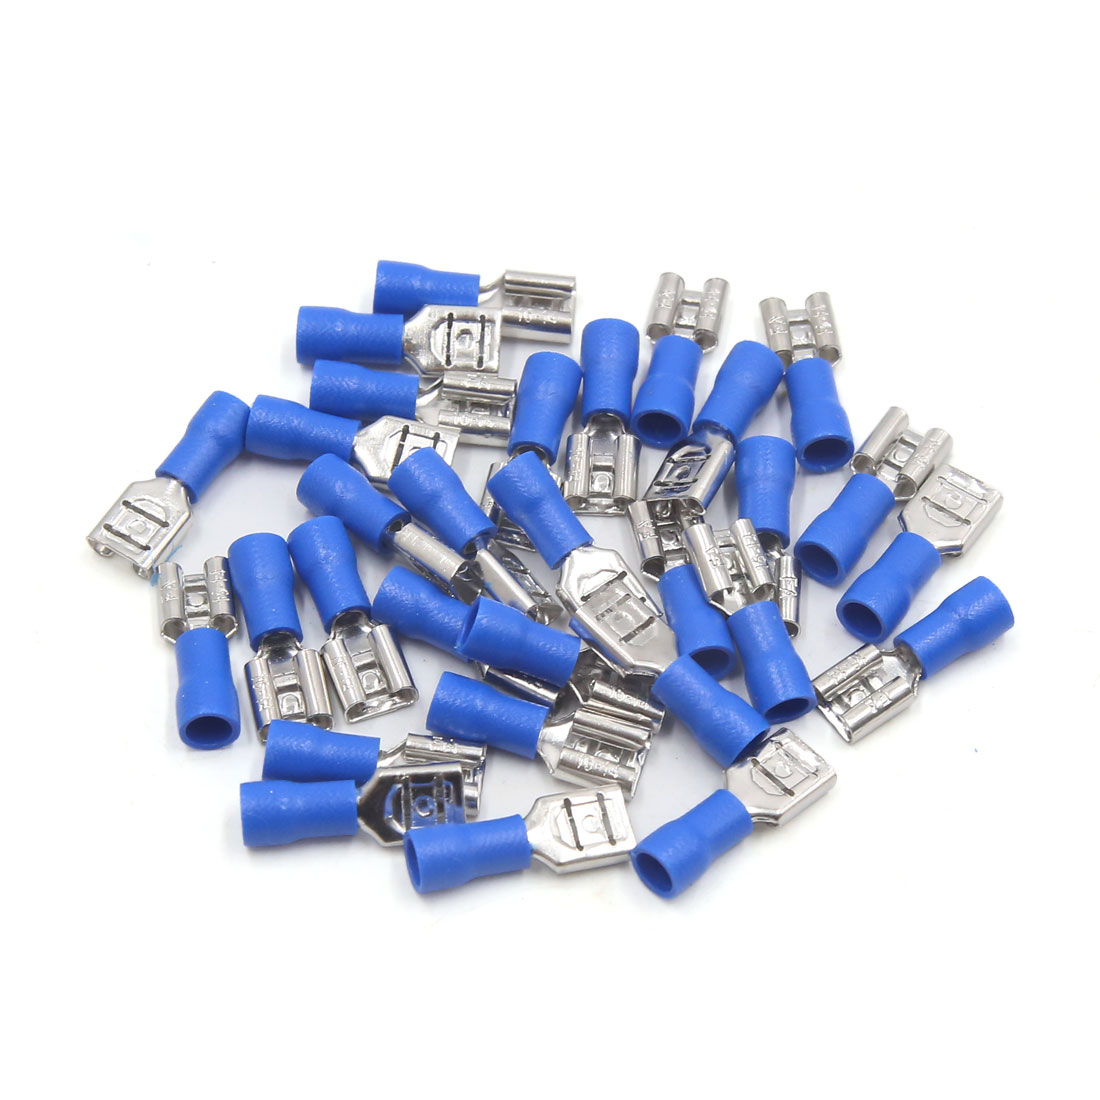 30Pcs Blue Female Insulated Spade Wire Crimp Terminal Connector for Auto Vehicle